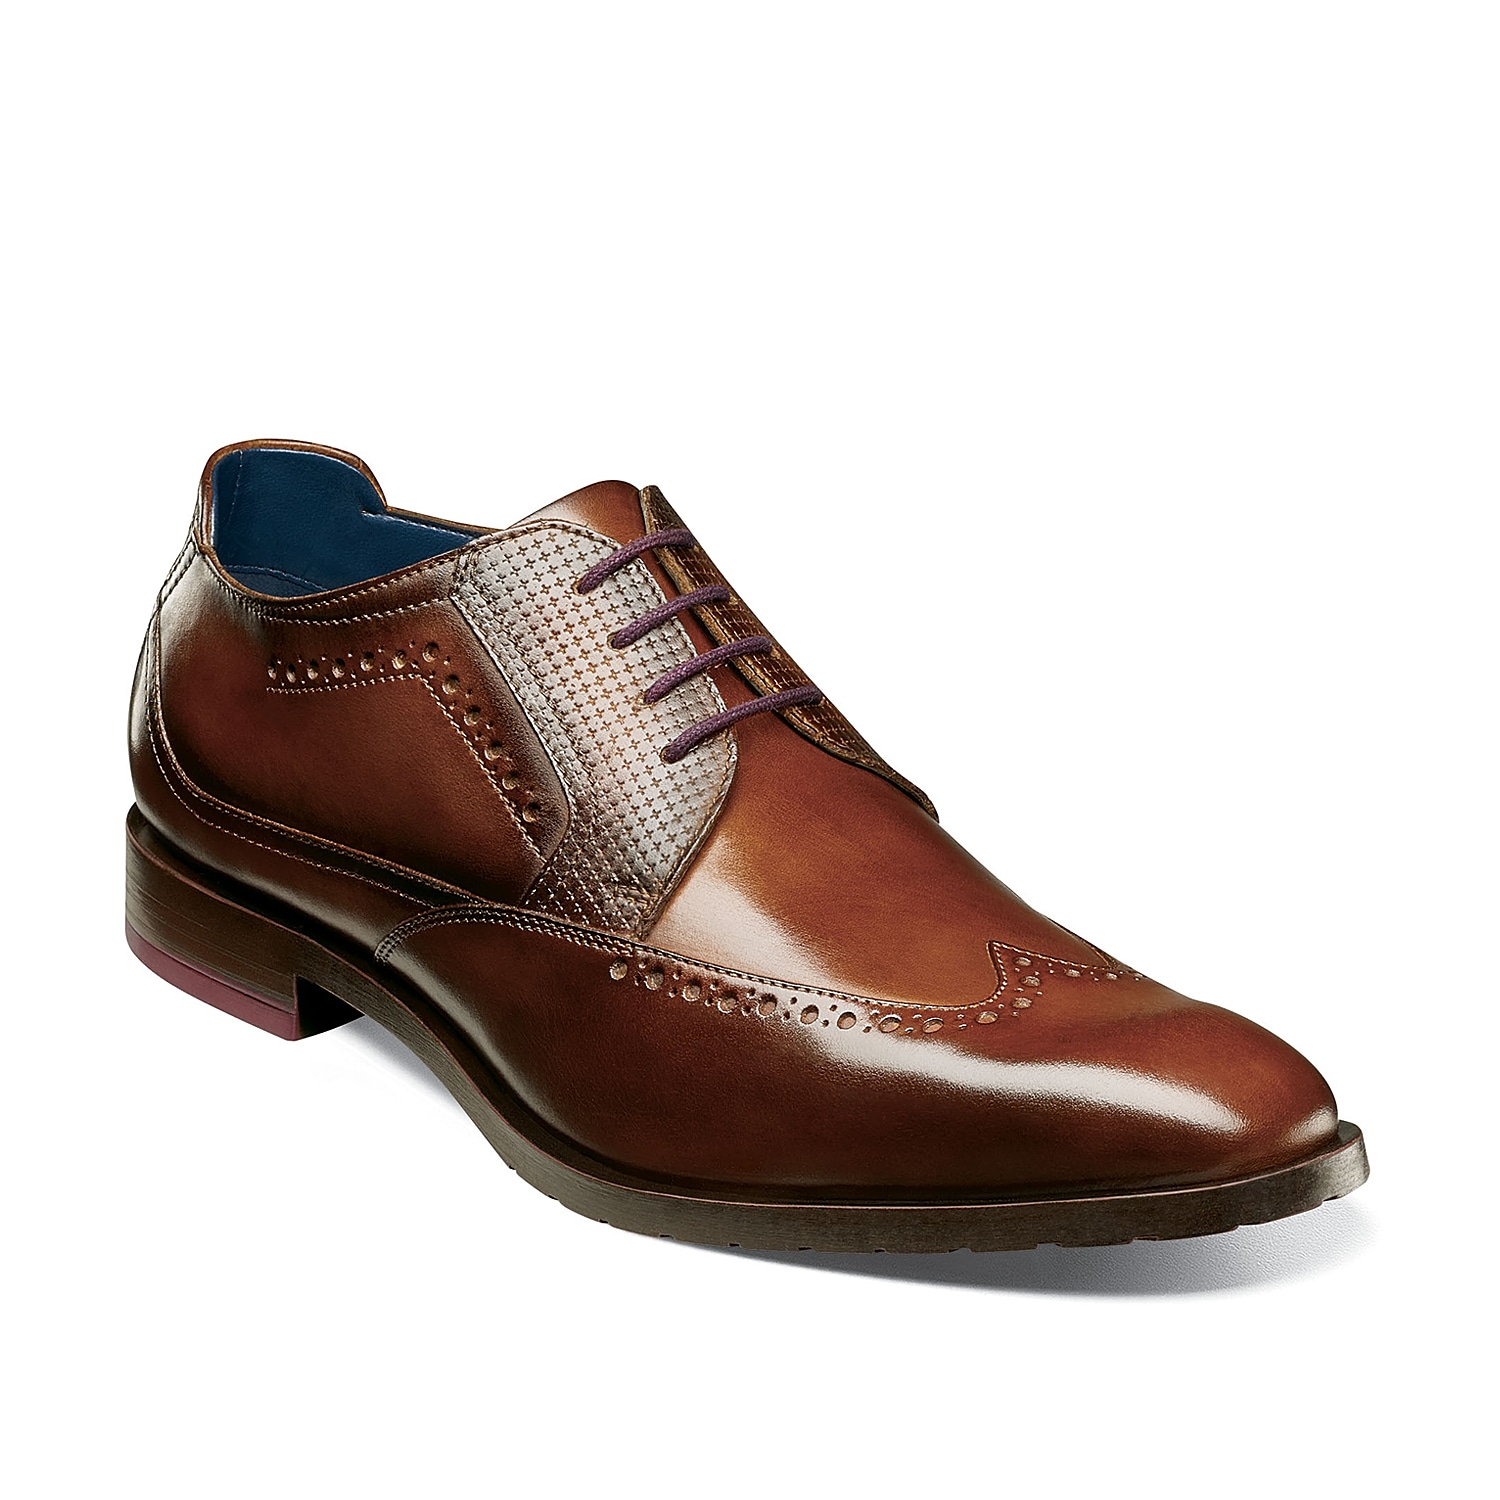 The Rooney oxford from Stacy Adams ensures to bring a put-together vibe to any outfit. These leather lace-ups feature classic wingtip and brogue detailing that will pair with dark wash jeans, a blazer, or vest!